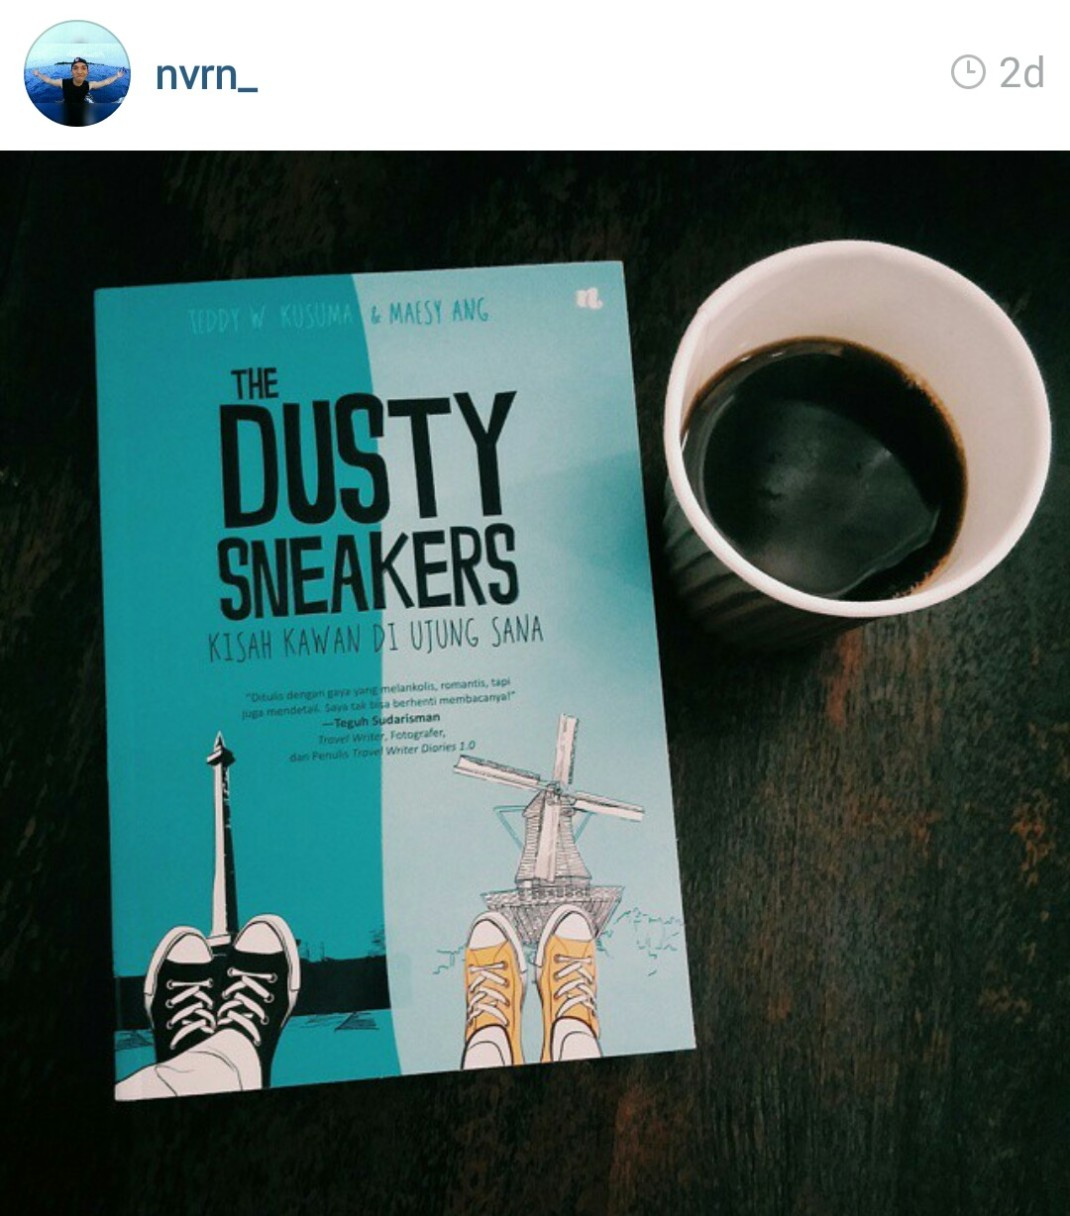 The Dusty Sneakers I Kisah Kawan di Ujung Sana 3